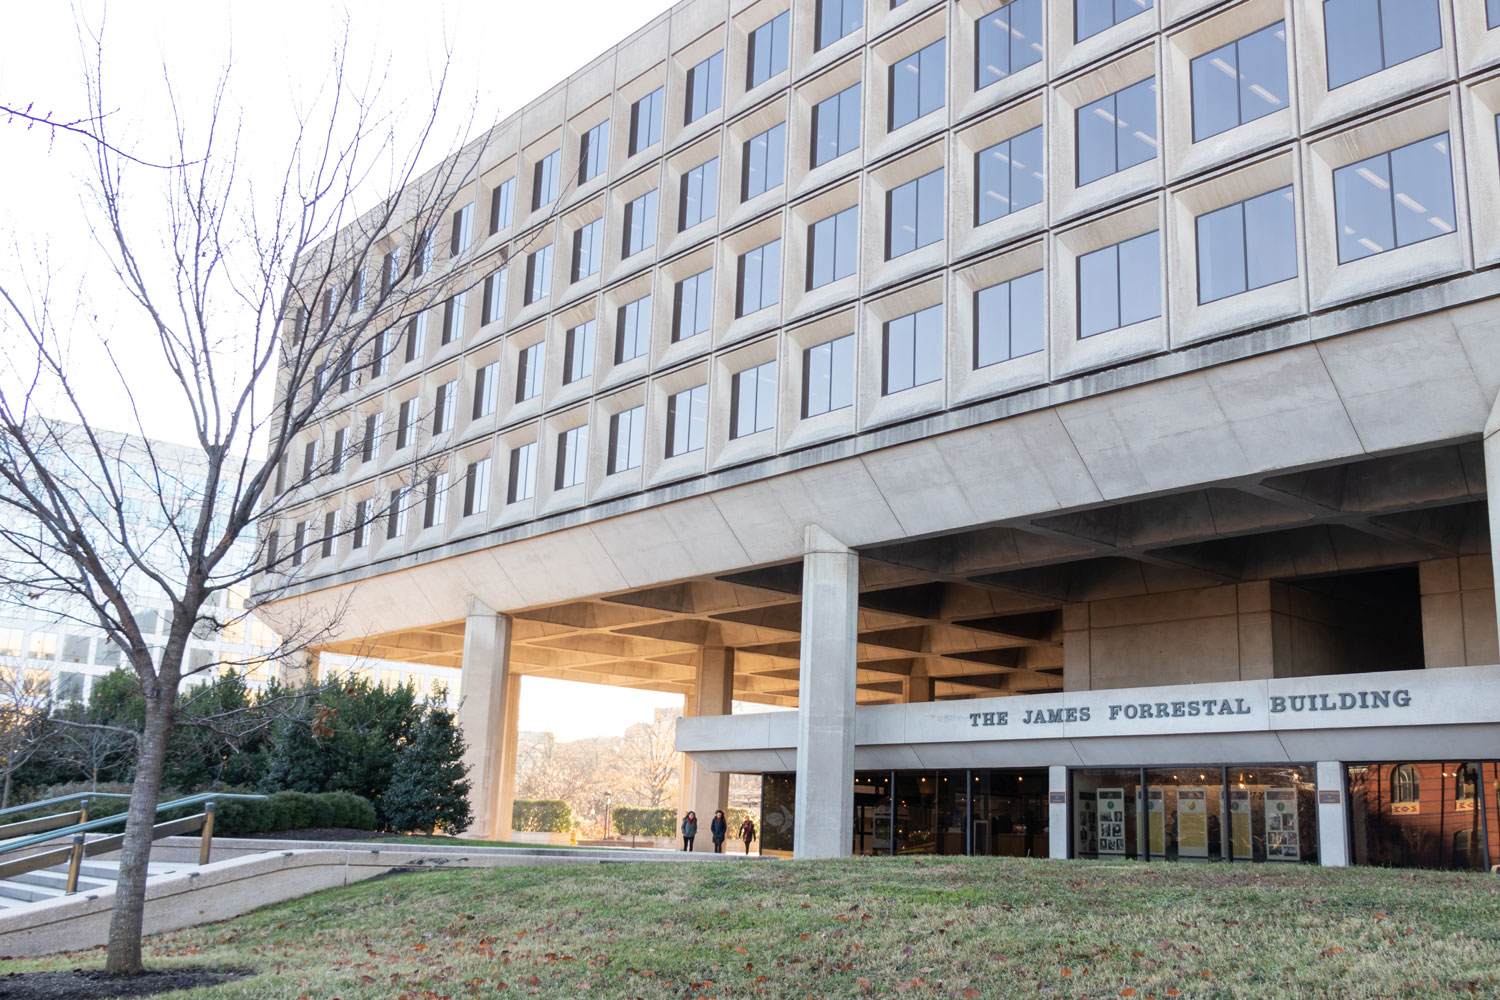 U.S. Department of Energy awards $750,000 to Camus Energy, PNNL, and KCEC to enable 100% daytime solar